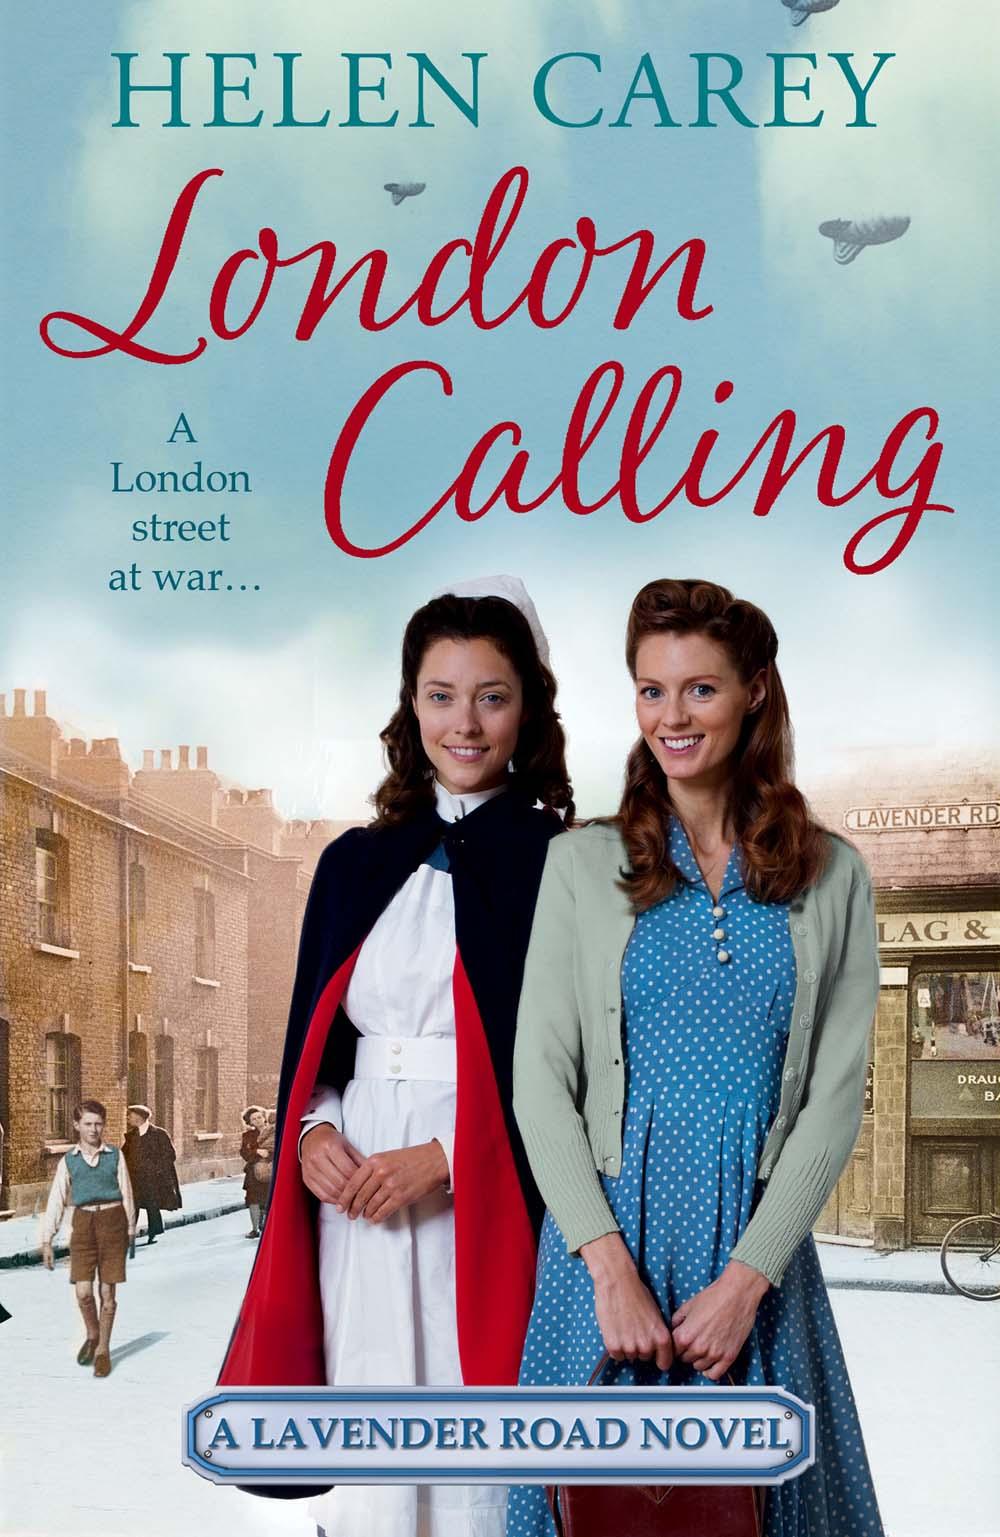 London Calling is Helen Carey's Fourth  Lavender Road  Novel